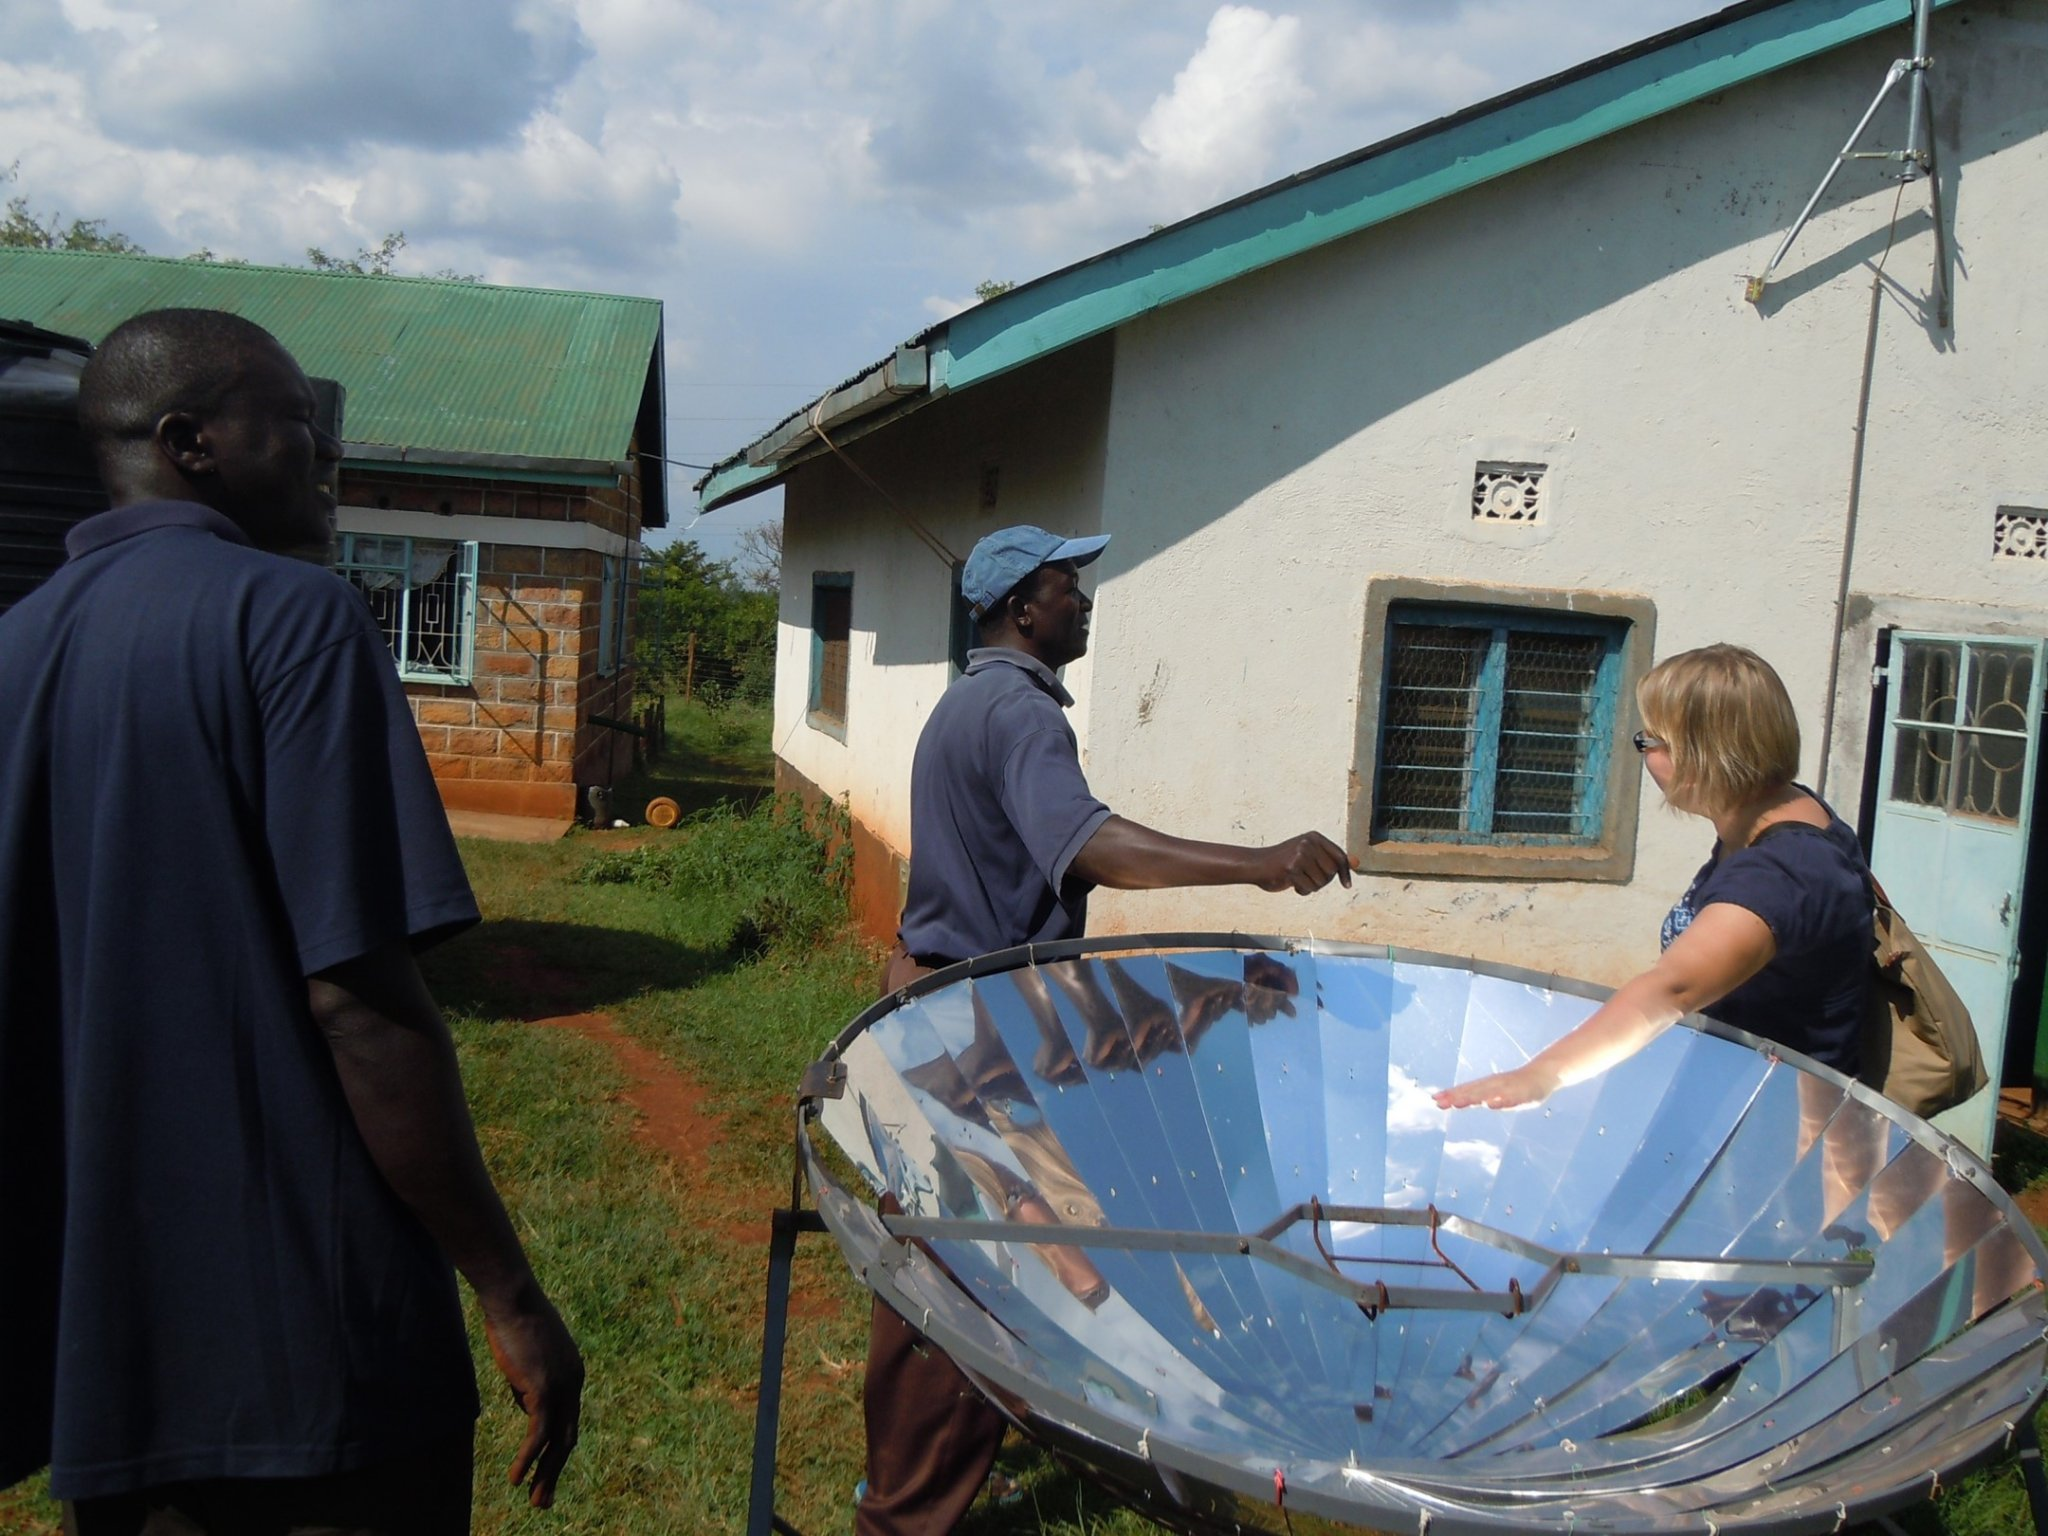 Paula meeting some local innovators who are designing affordable solutions for the local needs